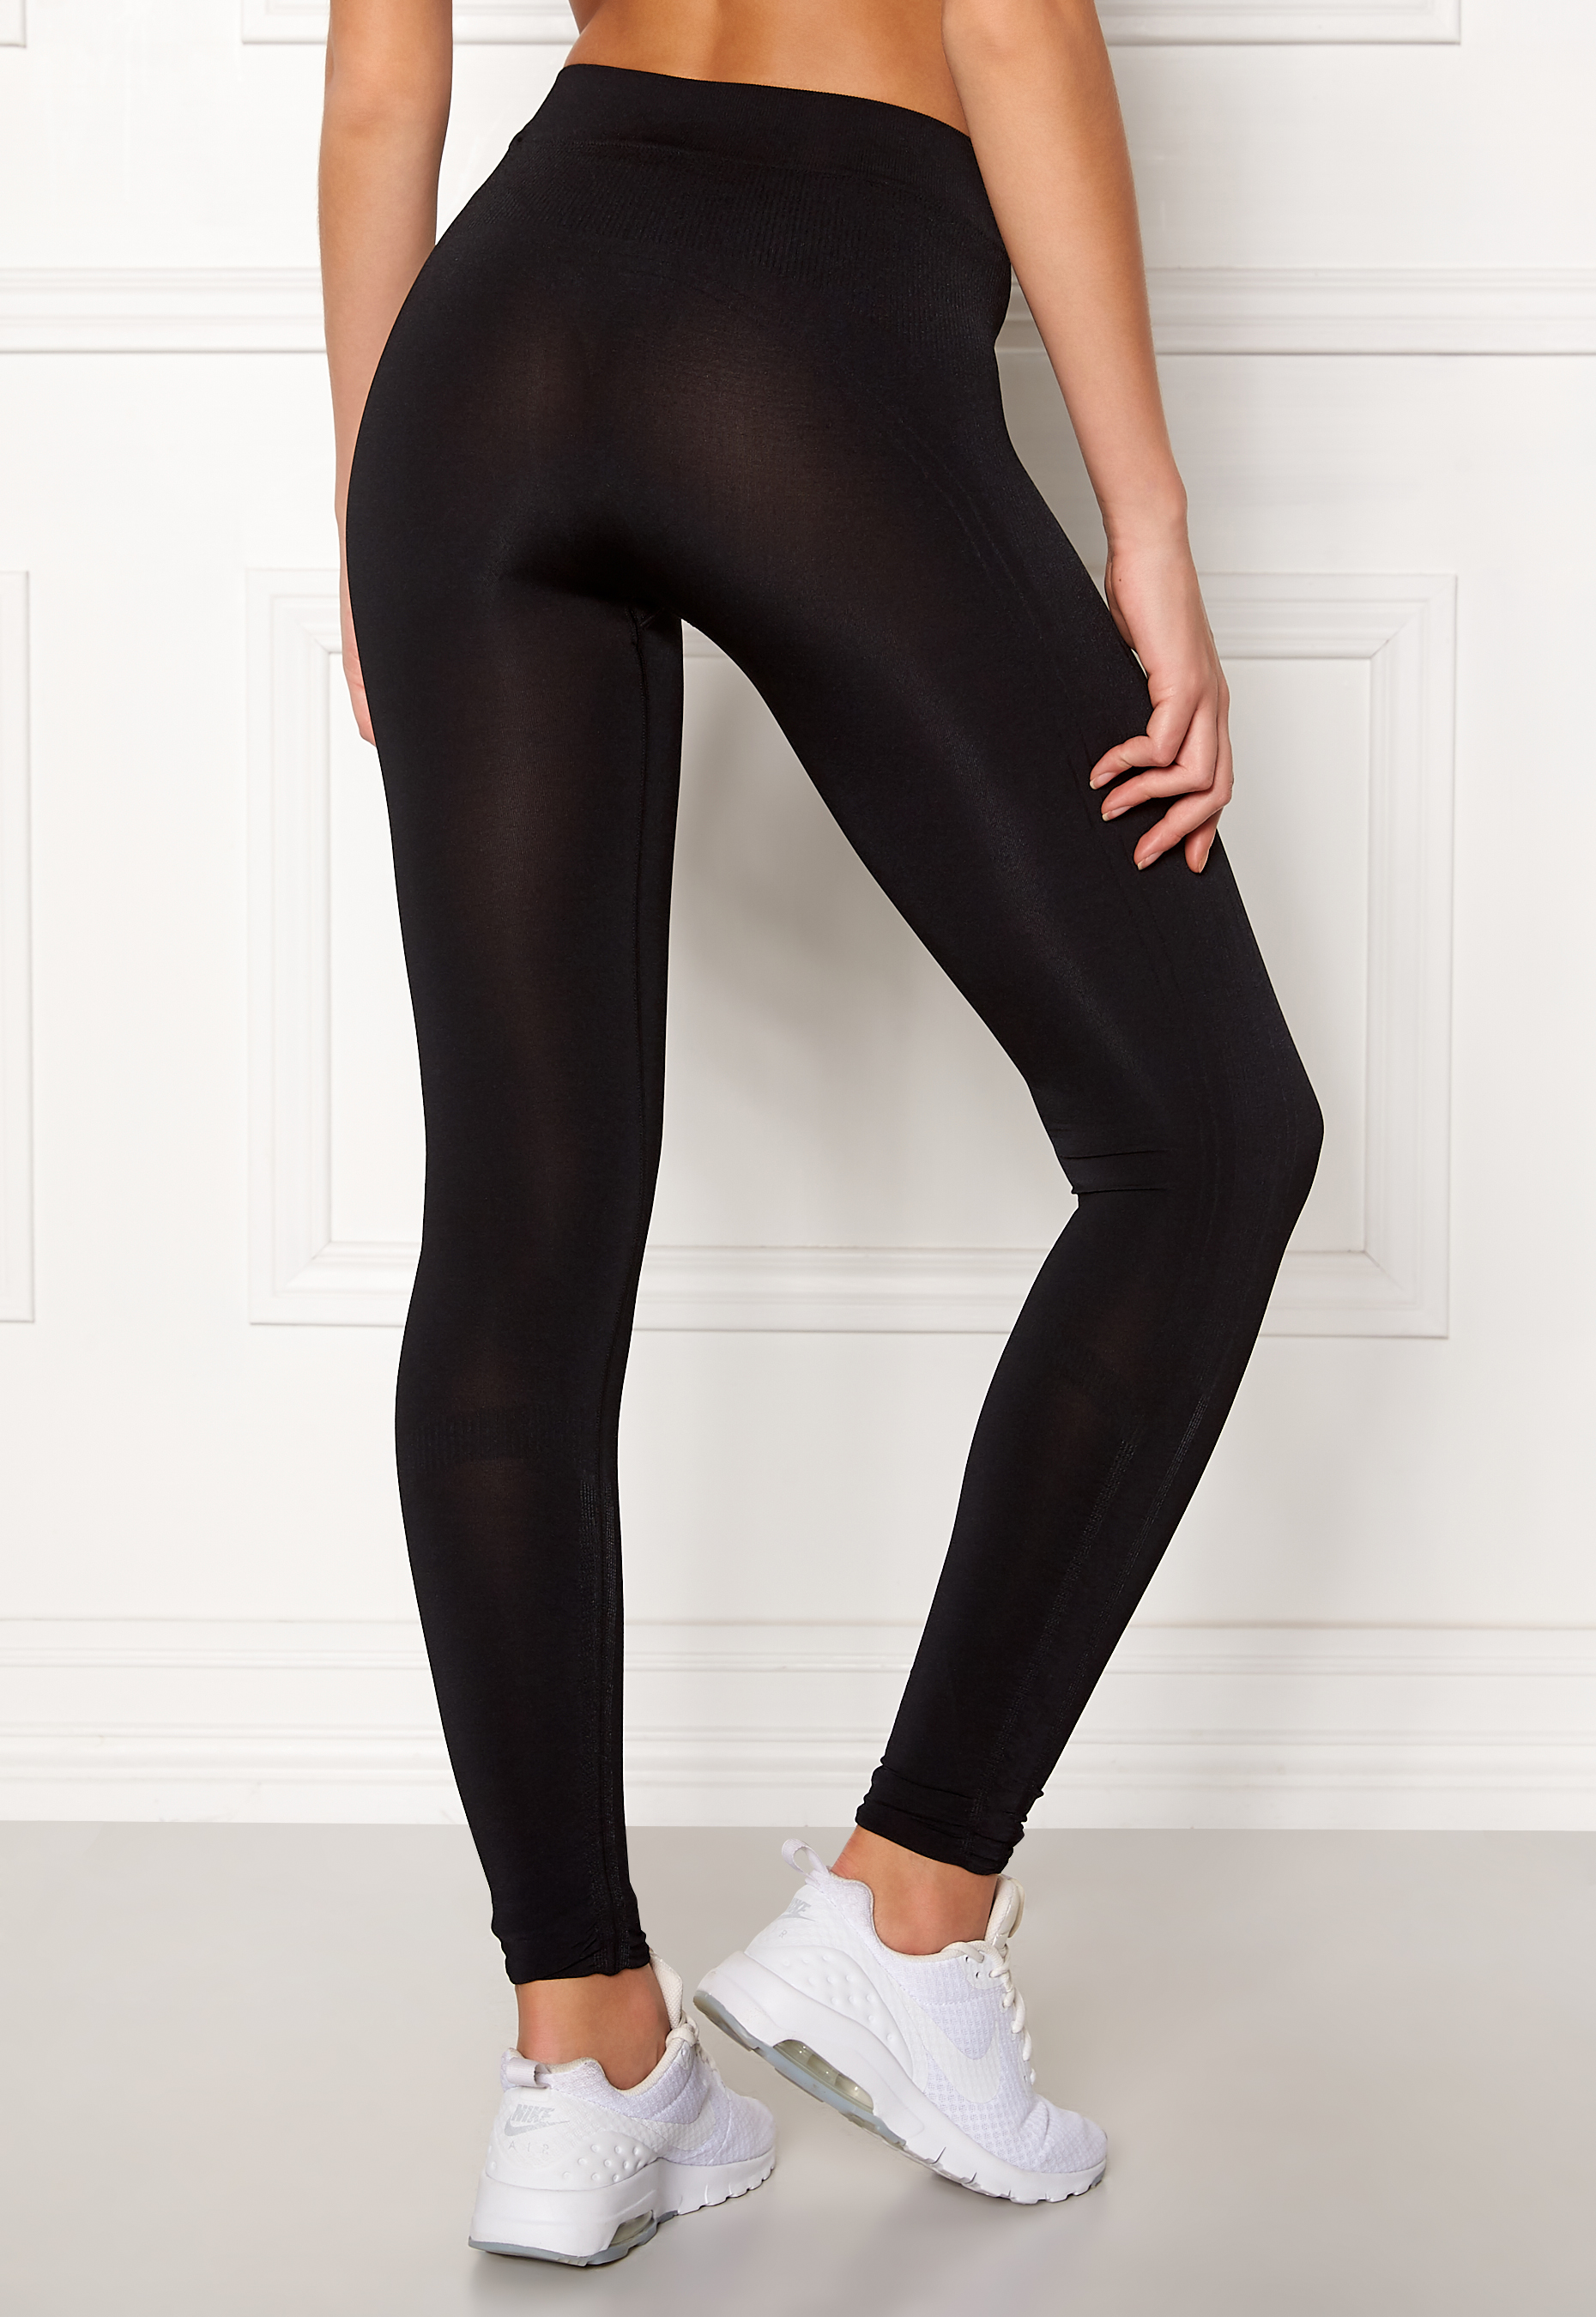 Black Ribbed Seamless Tights 78